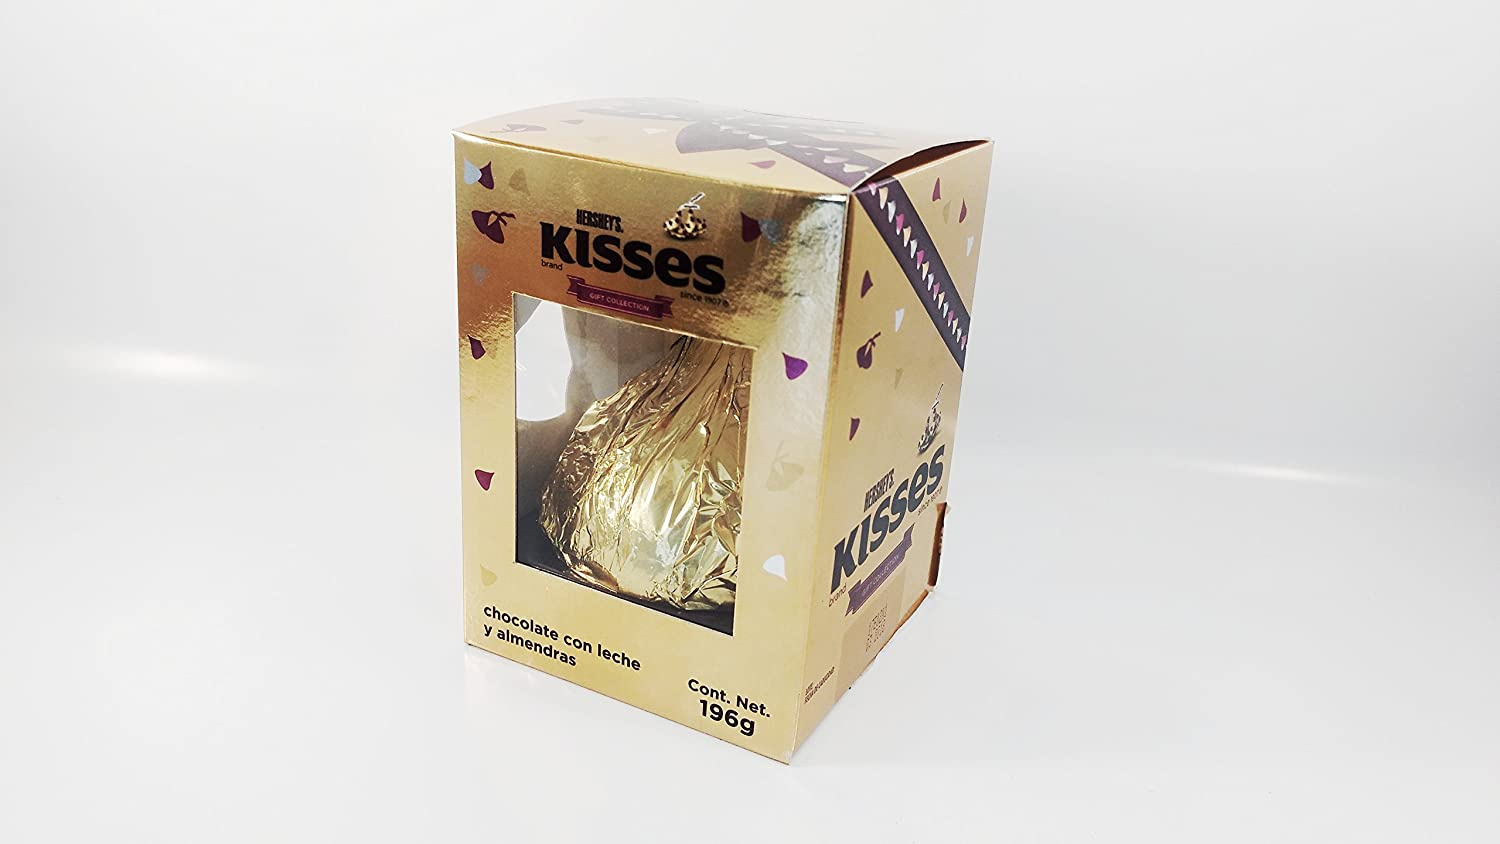 Amazon.com: HERSHEYS KISSES GIANT GIFT COLLECTION MILK CHOCOLATE WITH ALMONDS (7oz) Authentic Mexican Candy with Free Chocolate Kinder Bar Included: Toys & ...